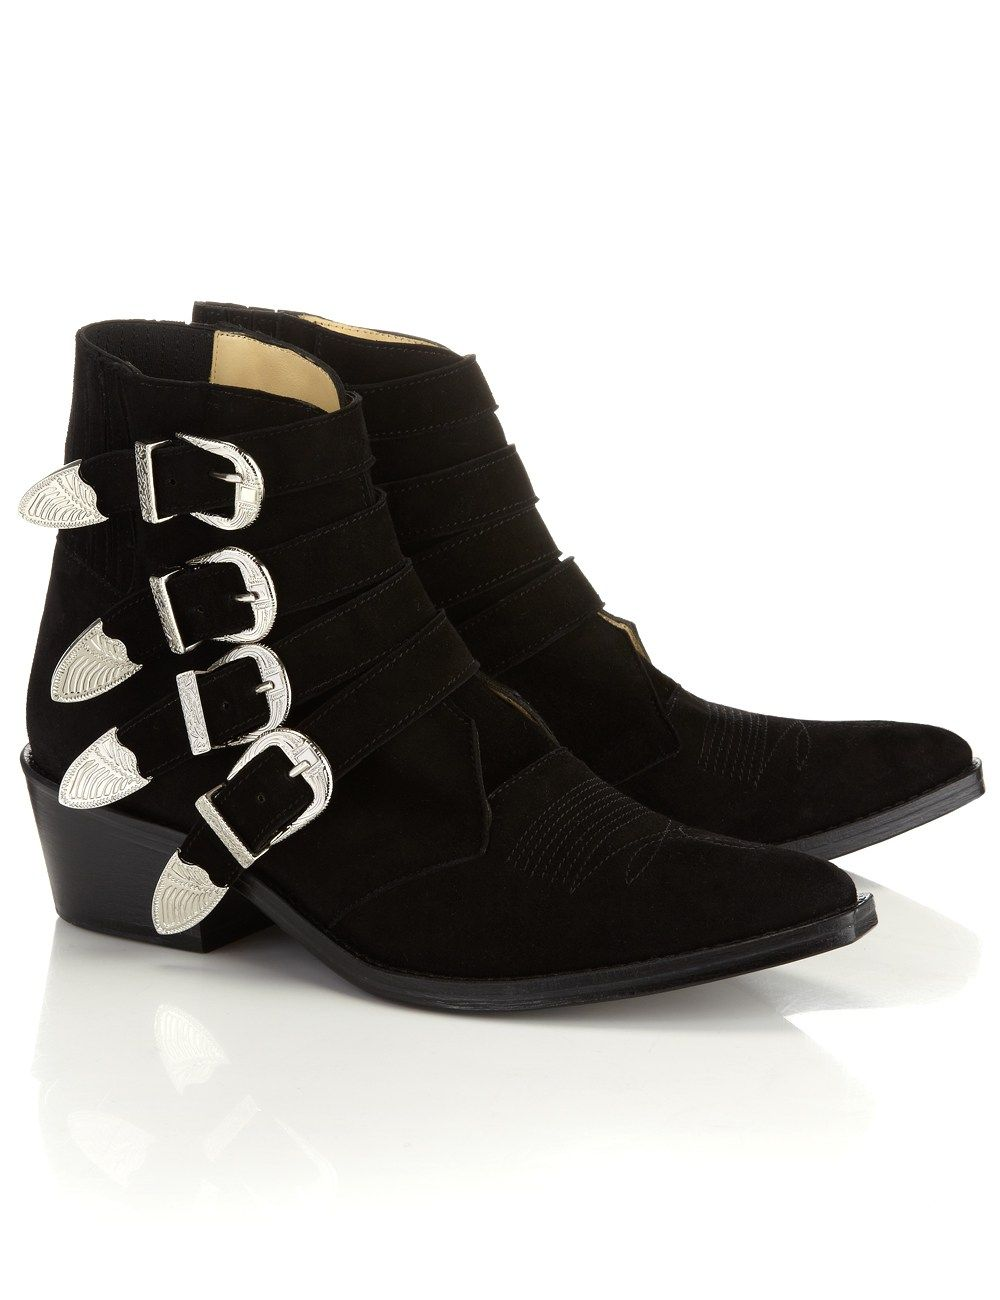 100% original cheap online Toga Pulla Suede Ankle Boots clearance get to buy pay with paypal XOfwkIE